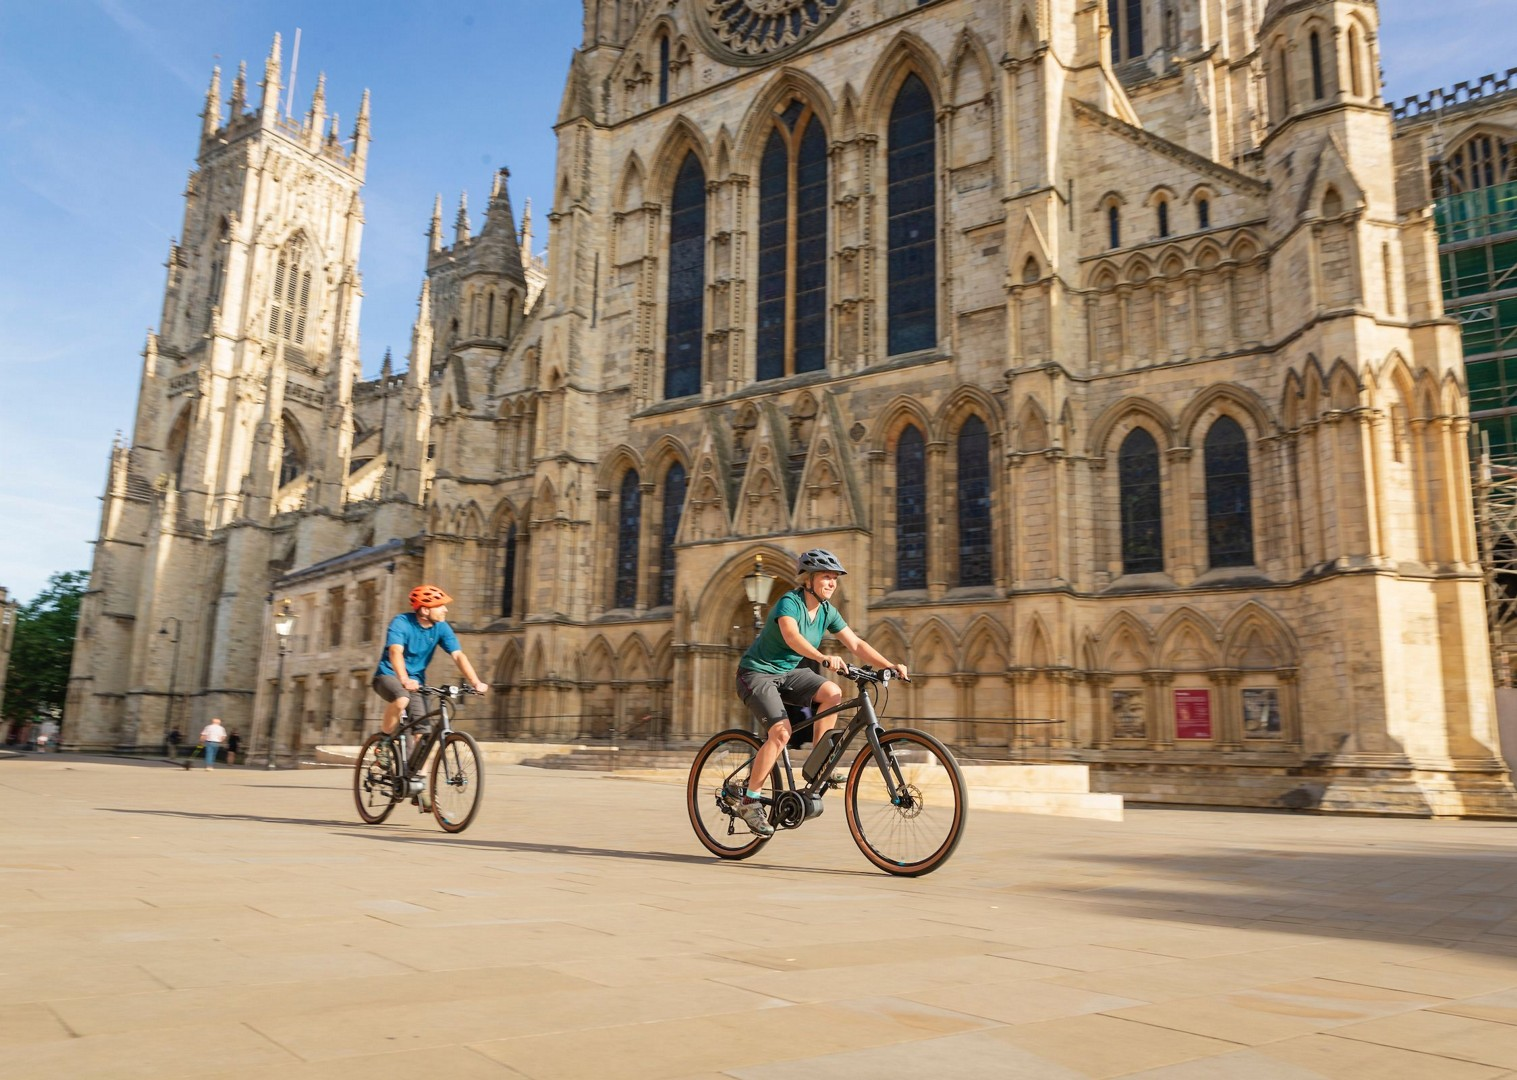 york-minster-saddle-skedaddle-cycling-holiday.jpg - UK - Way of the Roses - Supported Leisure Cycling Holiday - Leisure Cycling